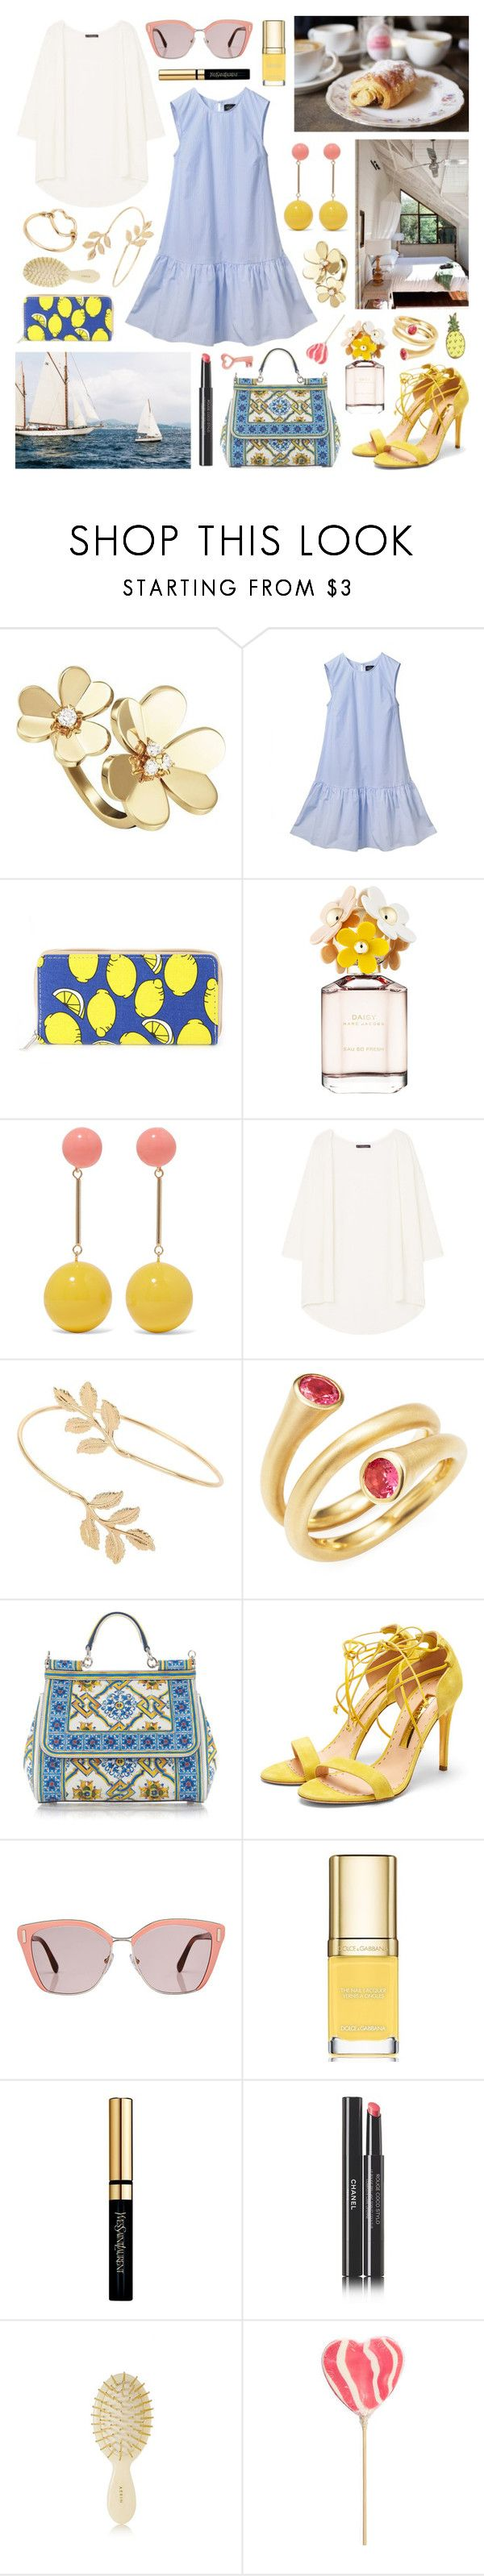 """i'll rent a beach house in miami"" by surma ❤ liked on Polyvore featuring Van Cleef & Arpels, Marc Jacobs, J.W. Anderson, MANGO, Miss Selfridge, Carelle, Dolce&Gabbana, Rupert Sanderson, Prada and Yves Saint Laurent"